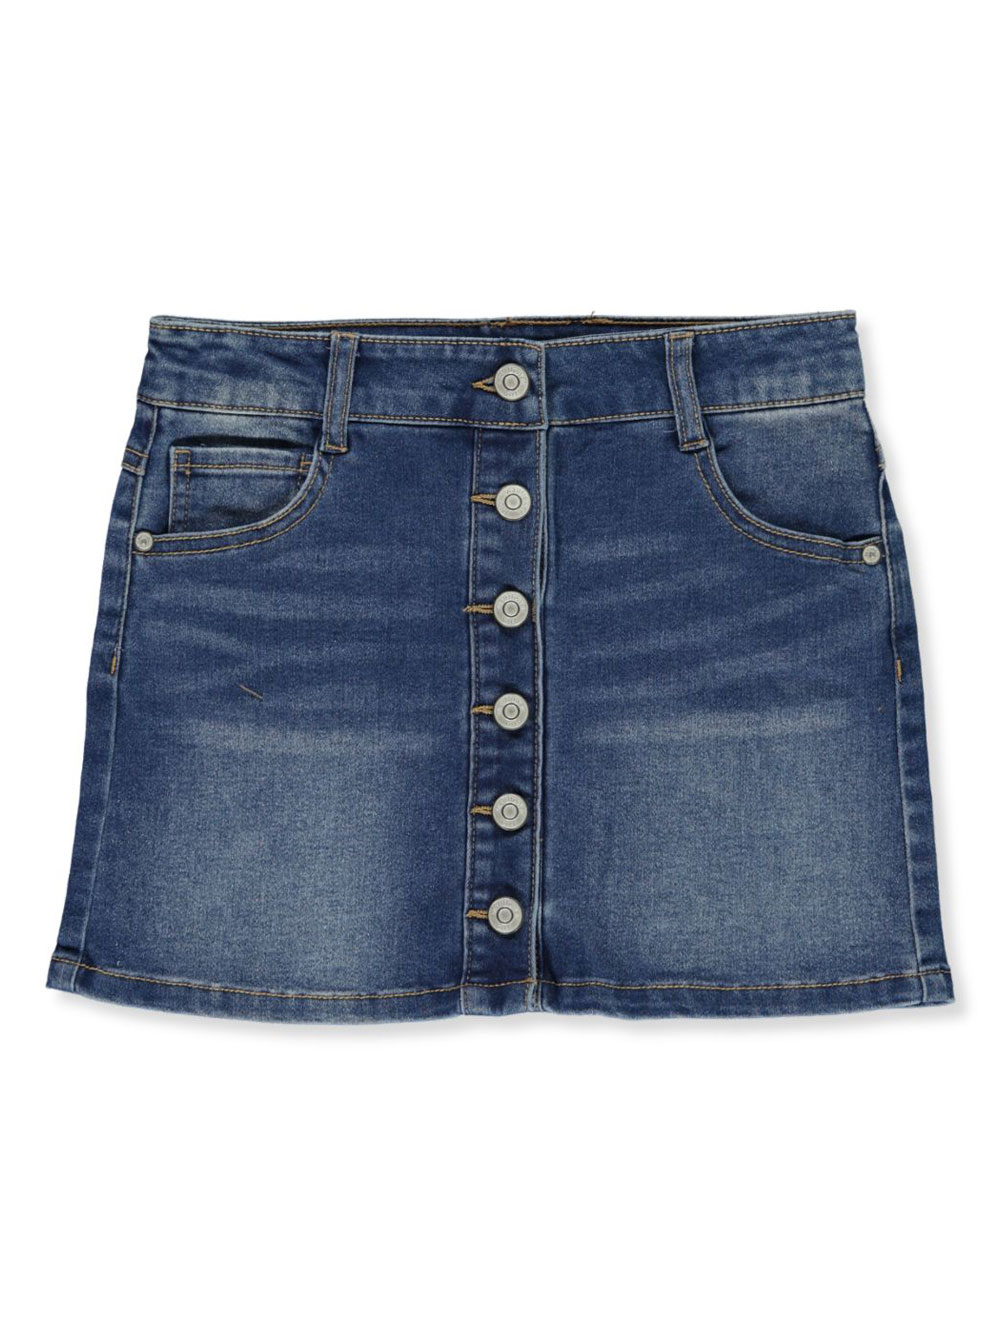 Skirts Denim Skirt